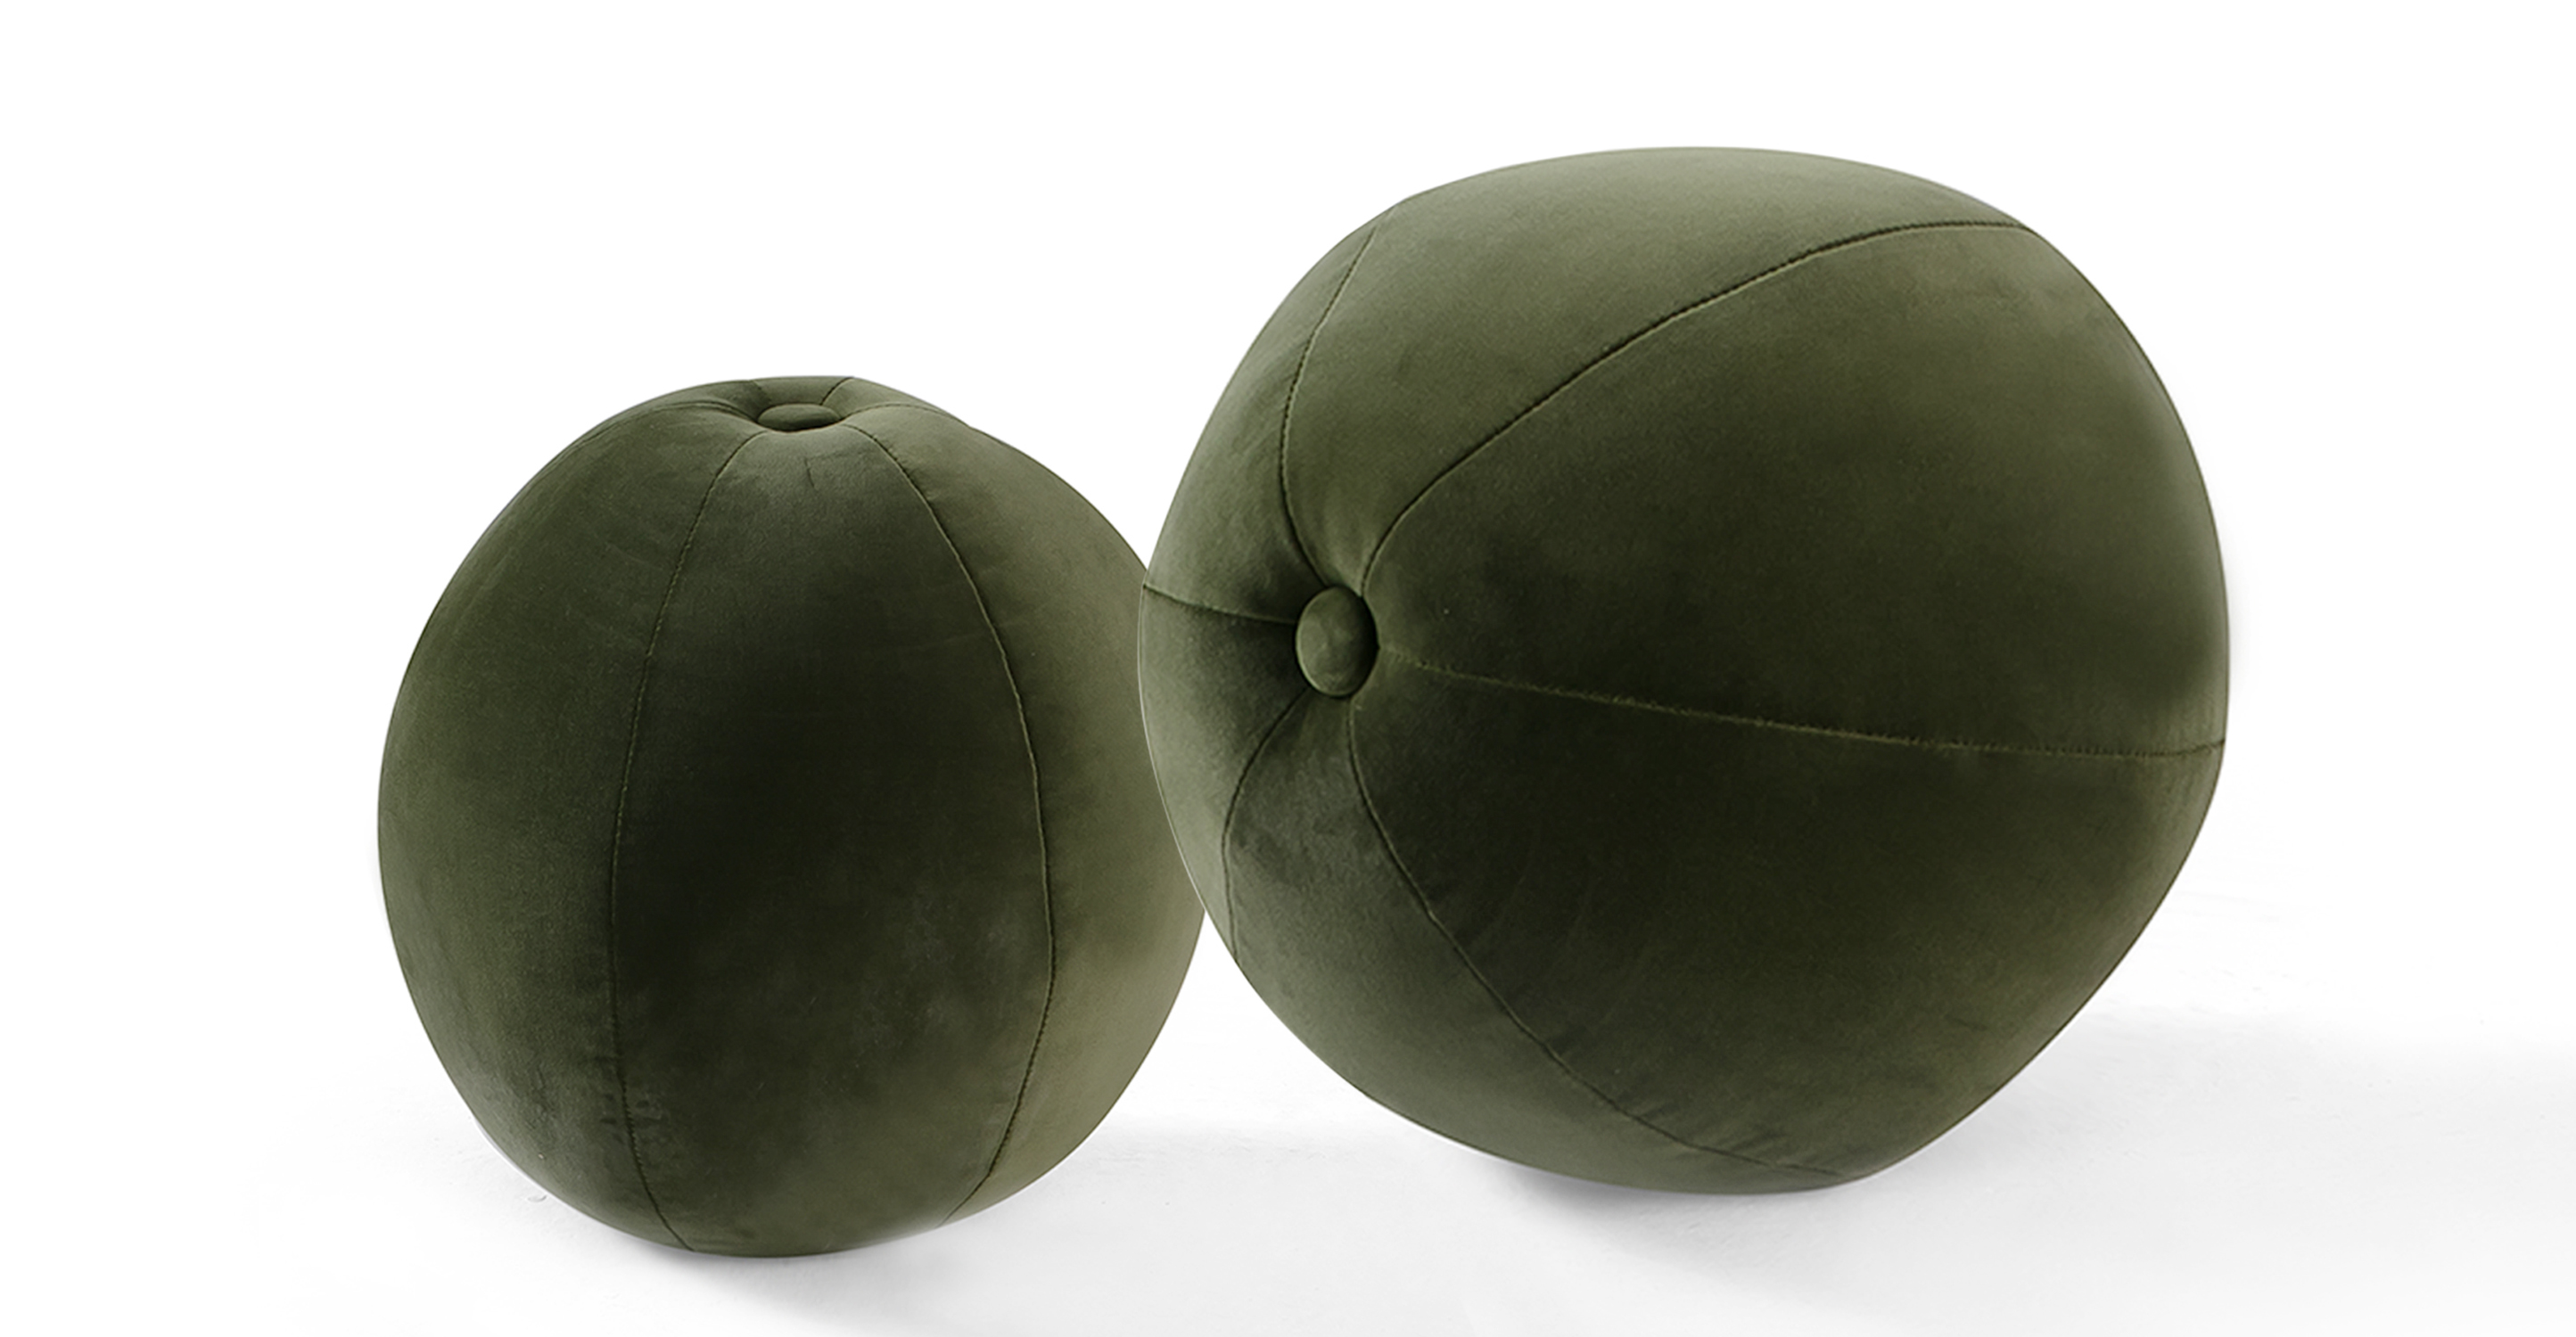 Mid-Century 2-Pc Orb Pillows, Fern Velvet